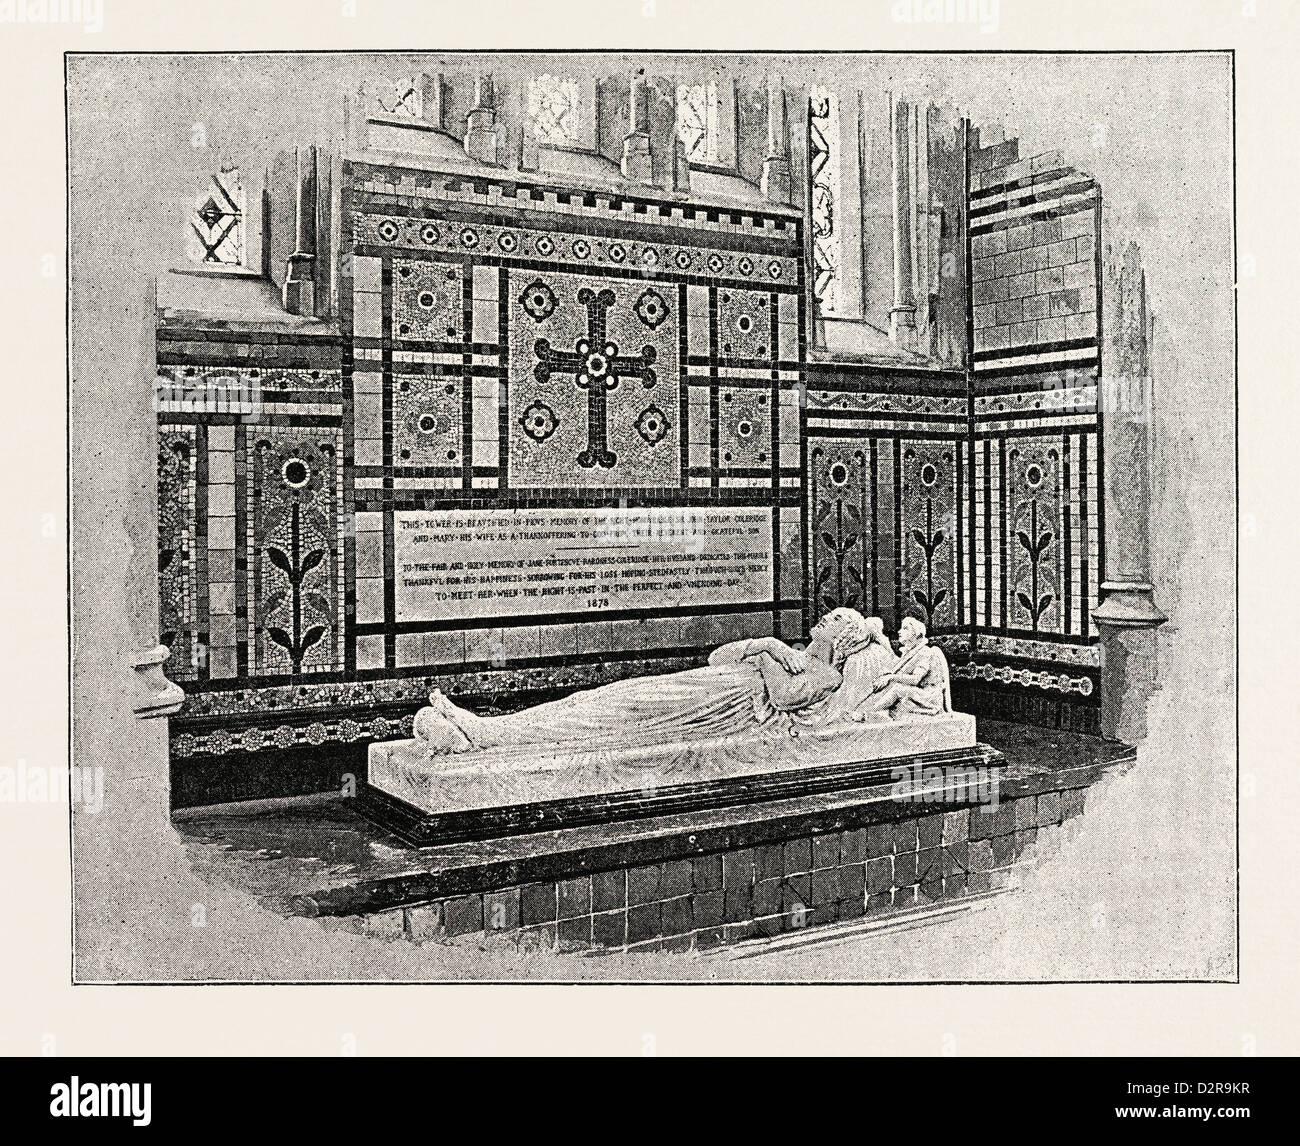 OTTERY ST. MARY, FROM THE SOUTH WEST, MONUMENT TO LADY COLERIDGE, UK - Stock Image